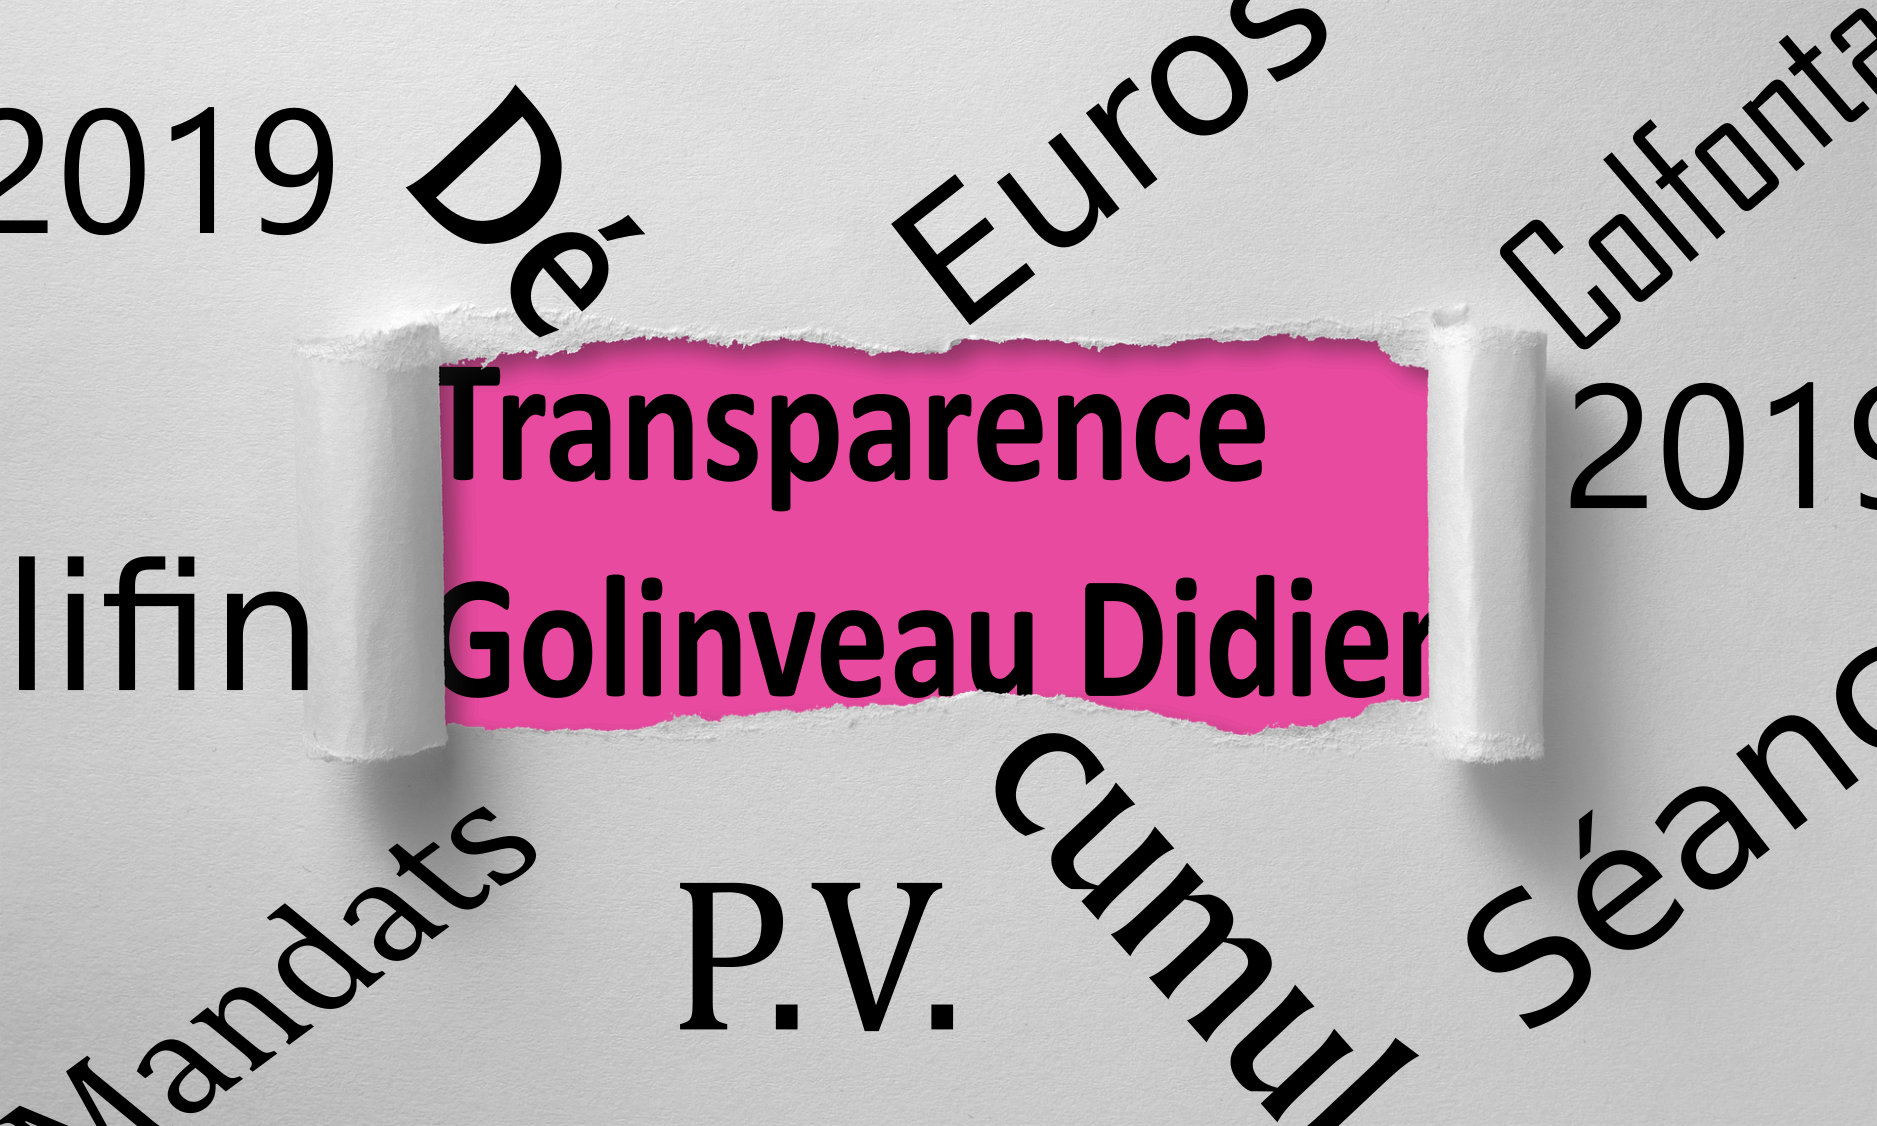 Transparence à Colfontaine